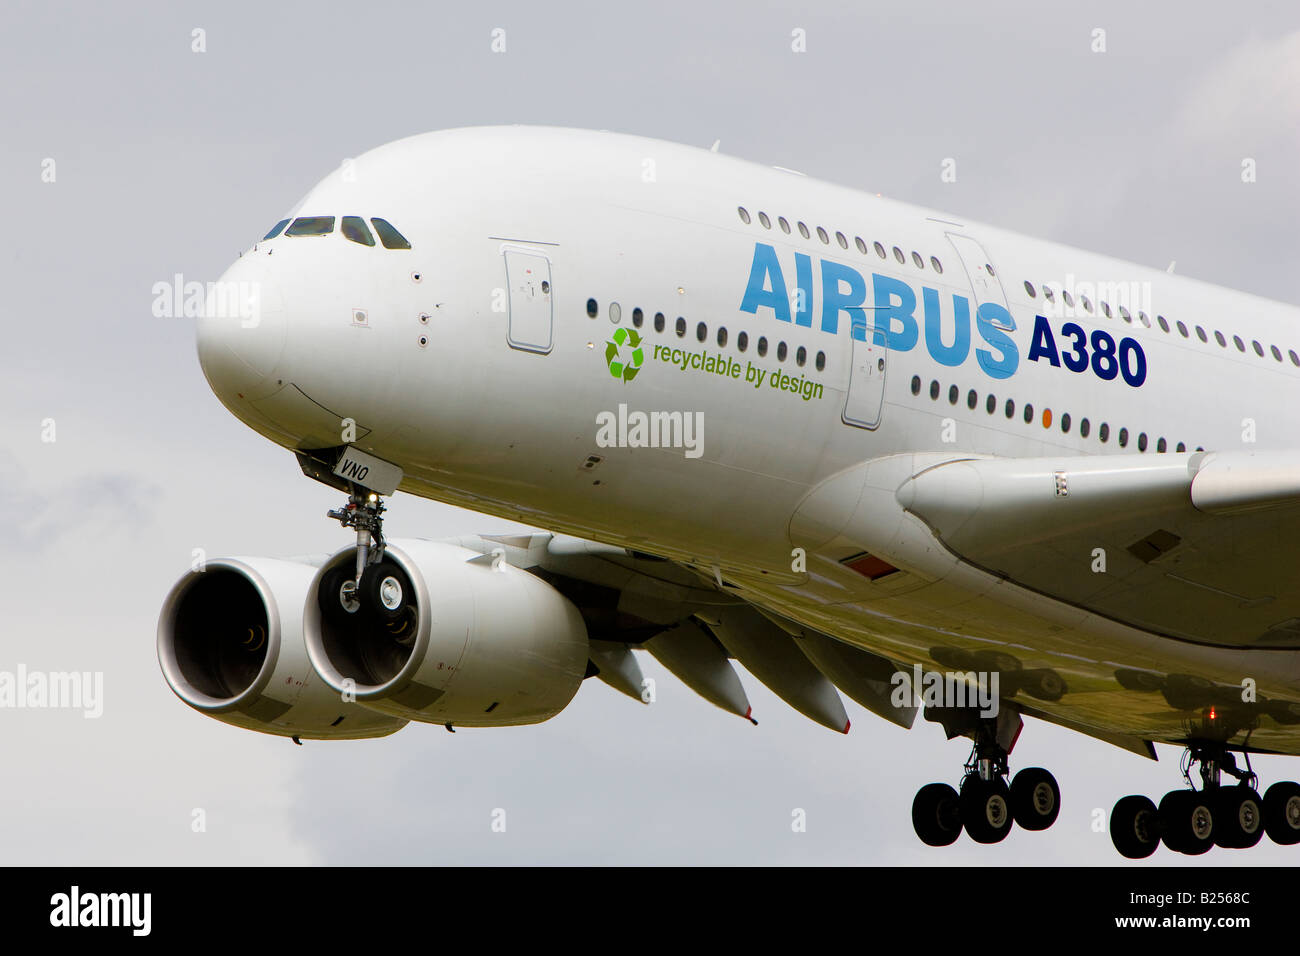 Airbus A380 double-deck wide-body airliner F-WWDD - Stock Image